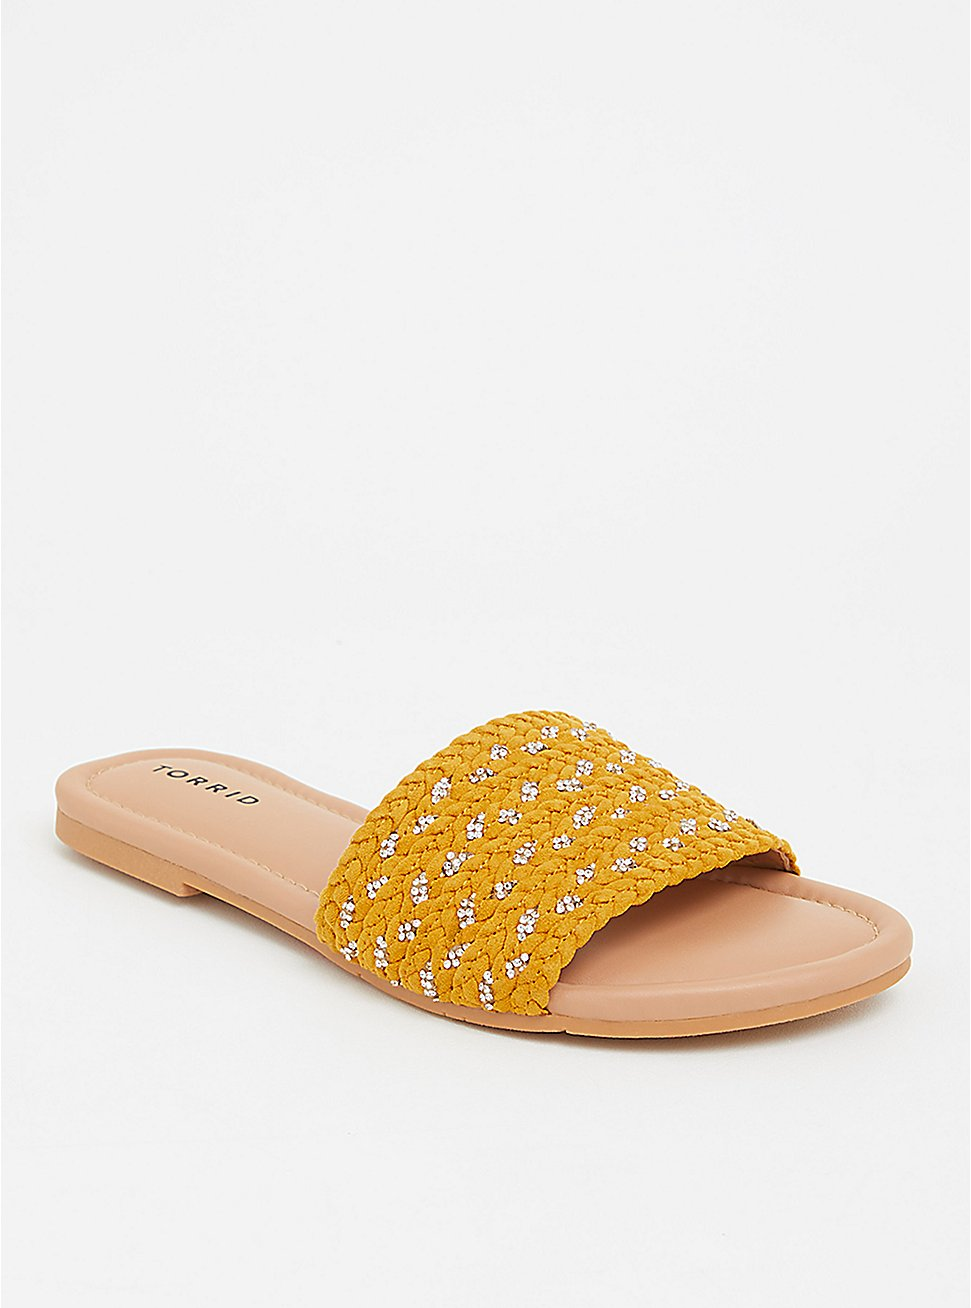 Plus Size Yellow Rhinestone Woven Slide (WW), YELLOW, hi-res